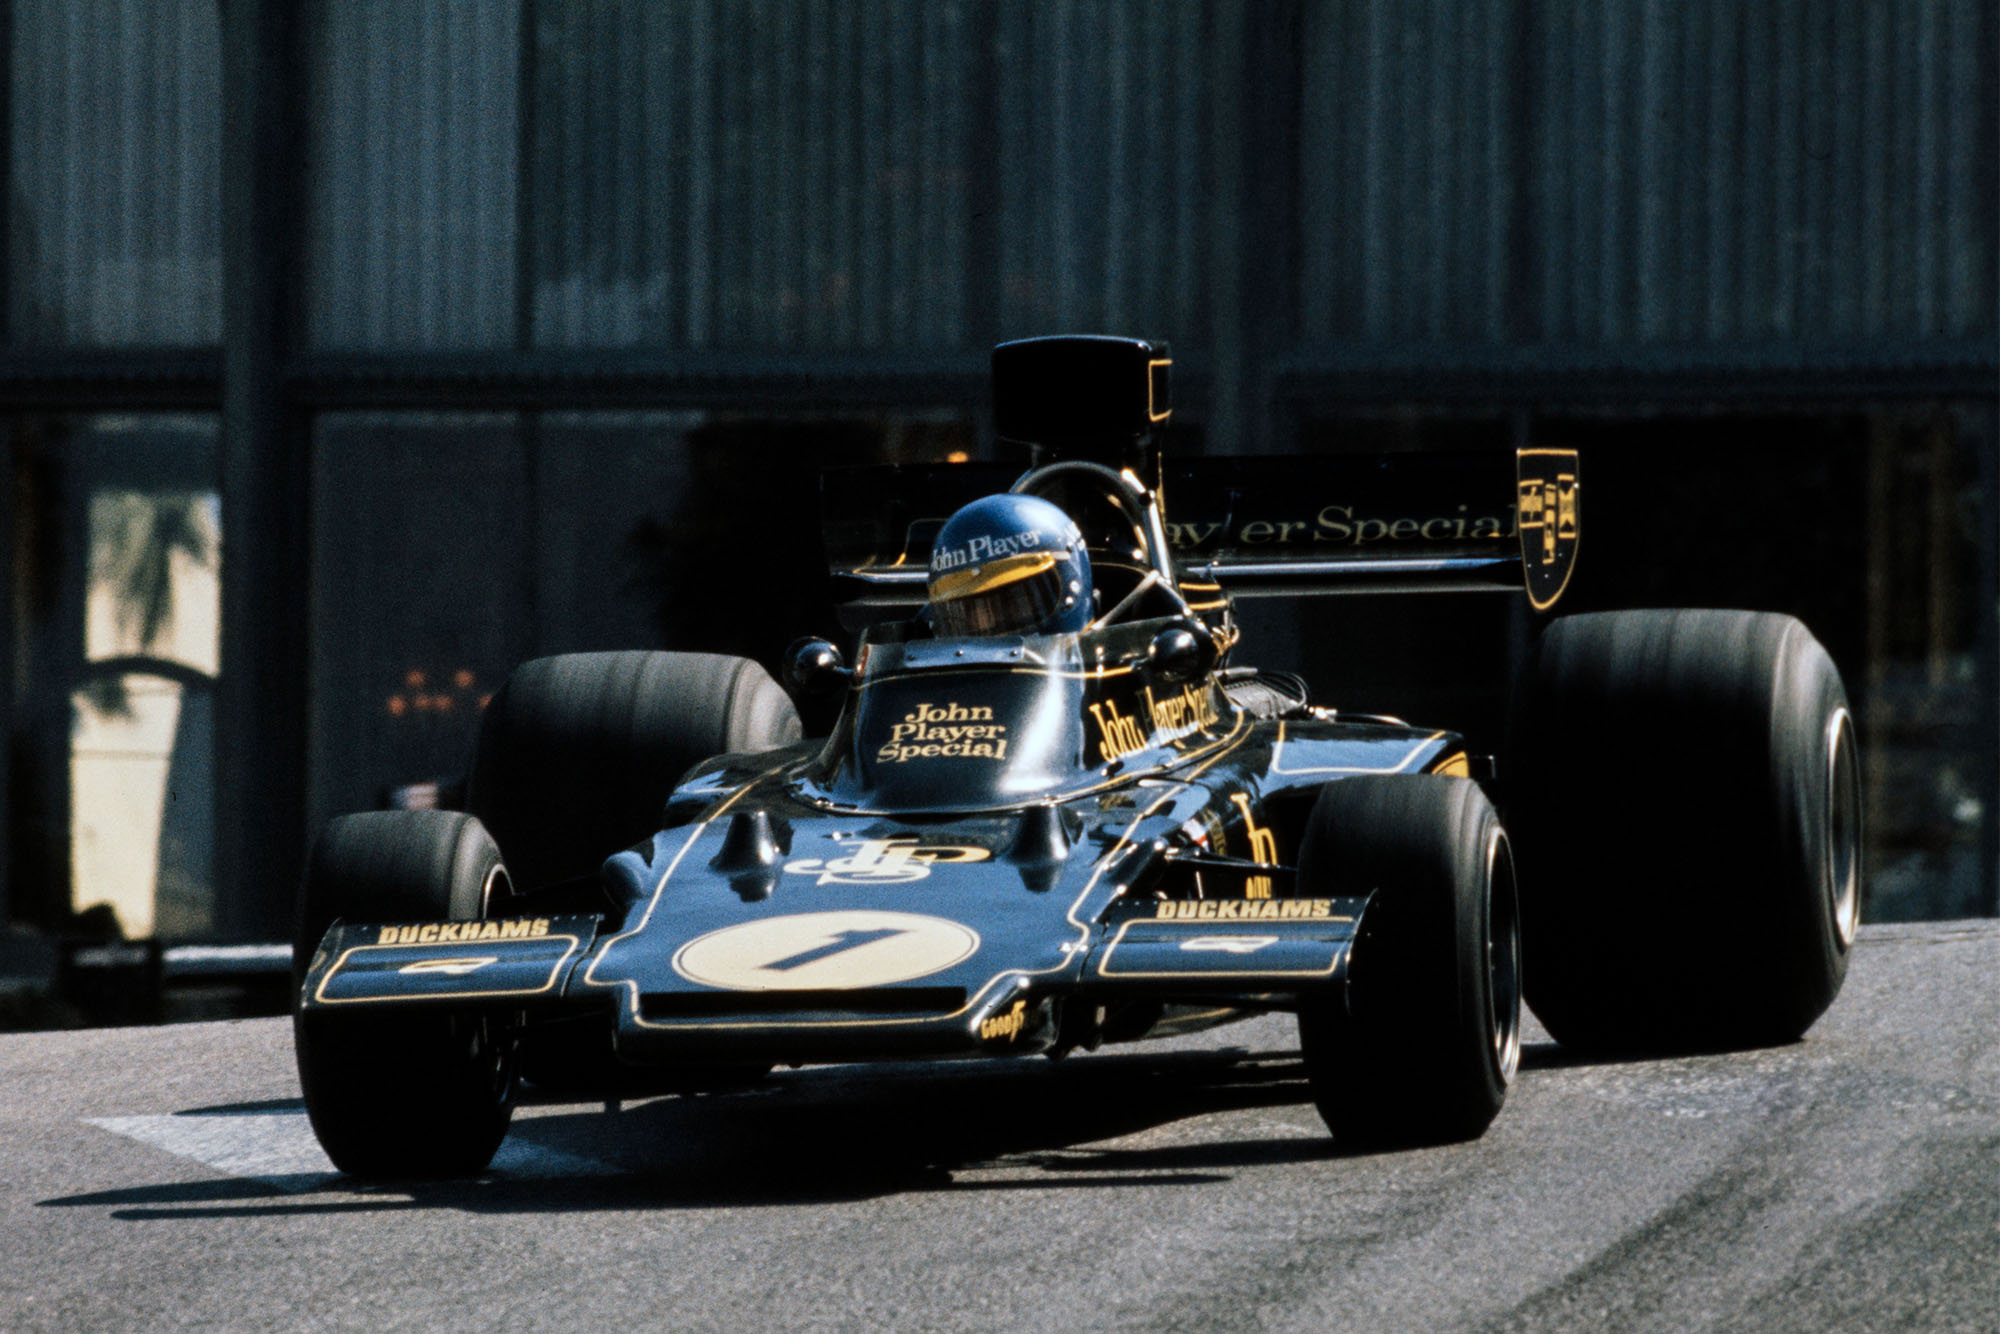 Ronnie Peterson (Lotus) during the 1974 Monaco Grand Prix